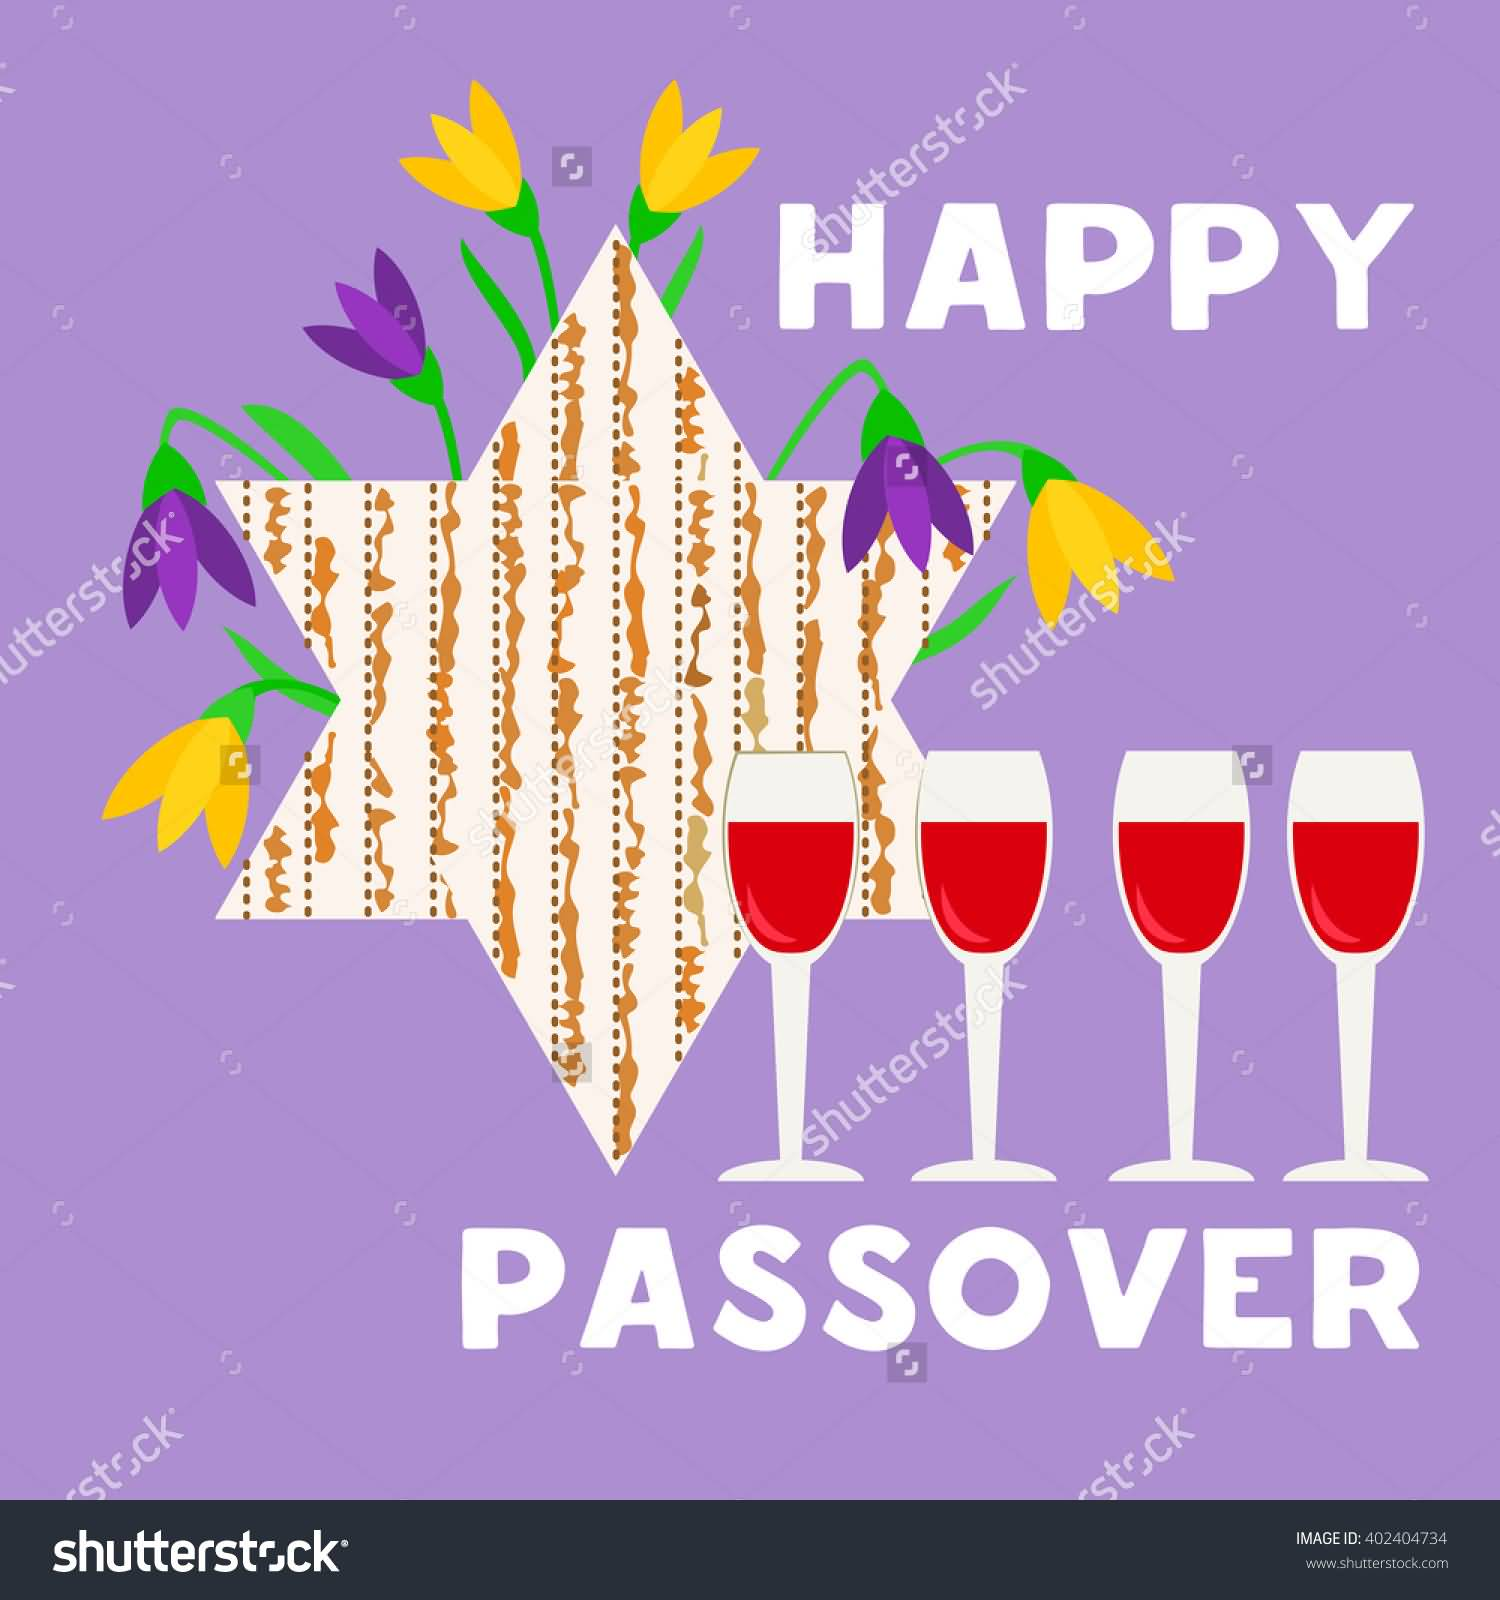 Proper greeting for passover images greetings card design simple 50 beautiful passover greeting pictures and images m4hsunfo